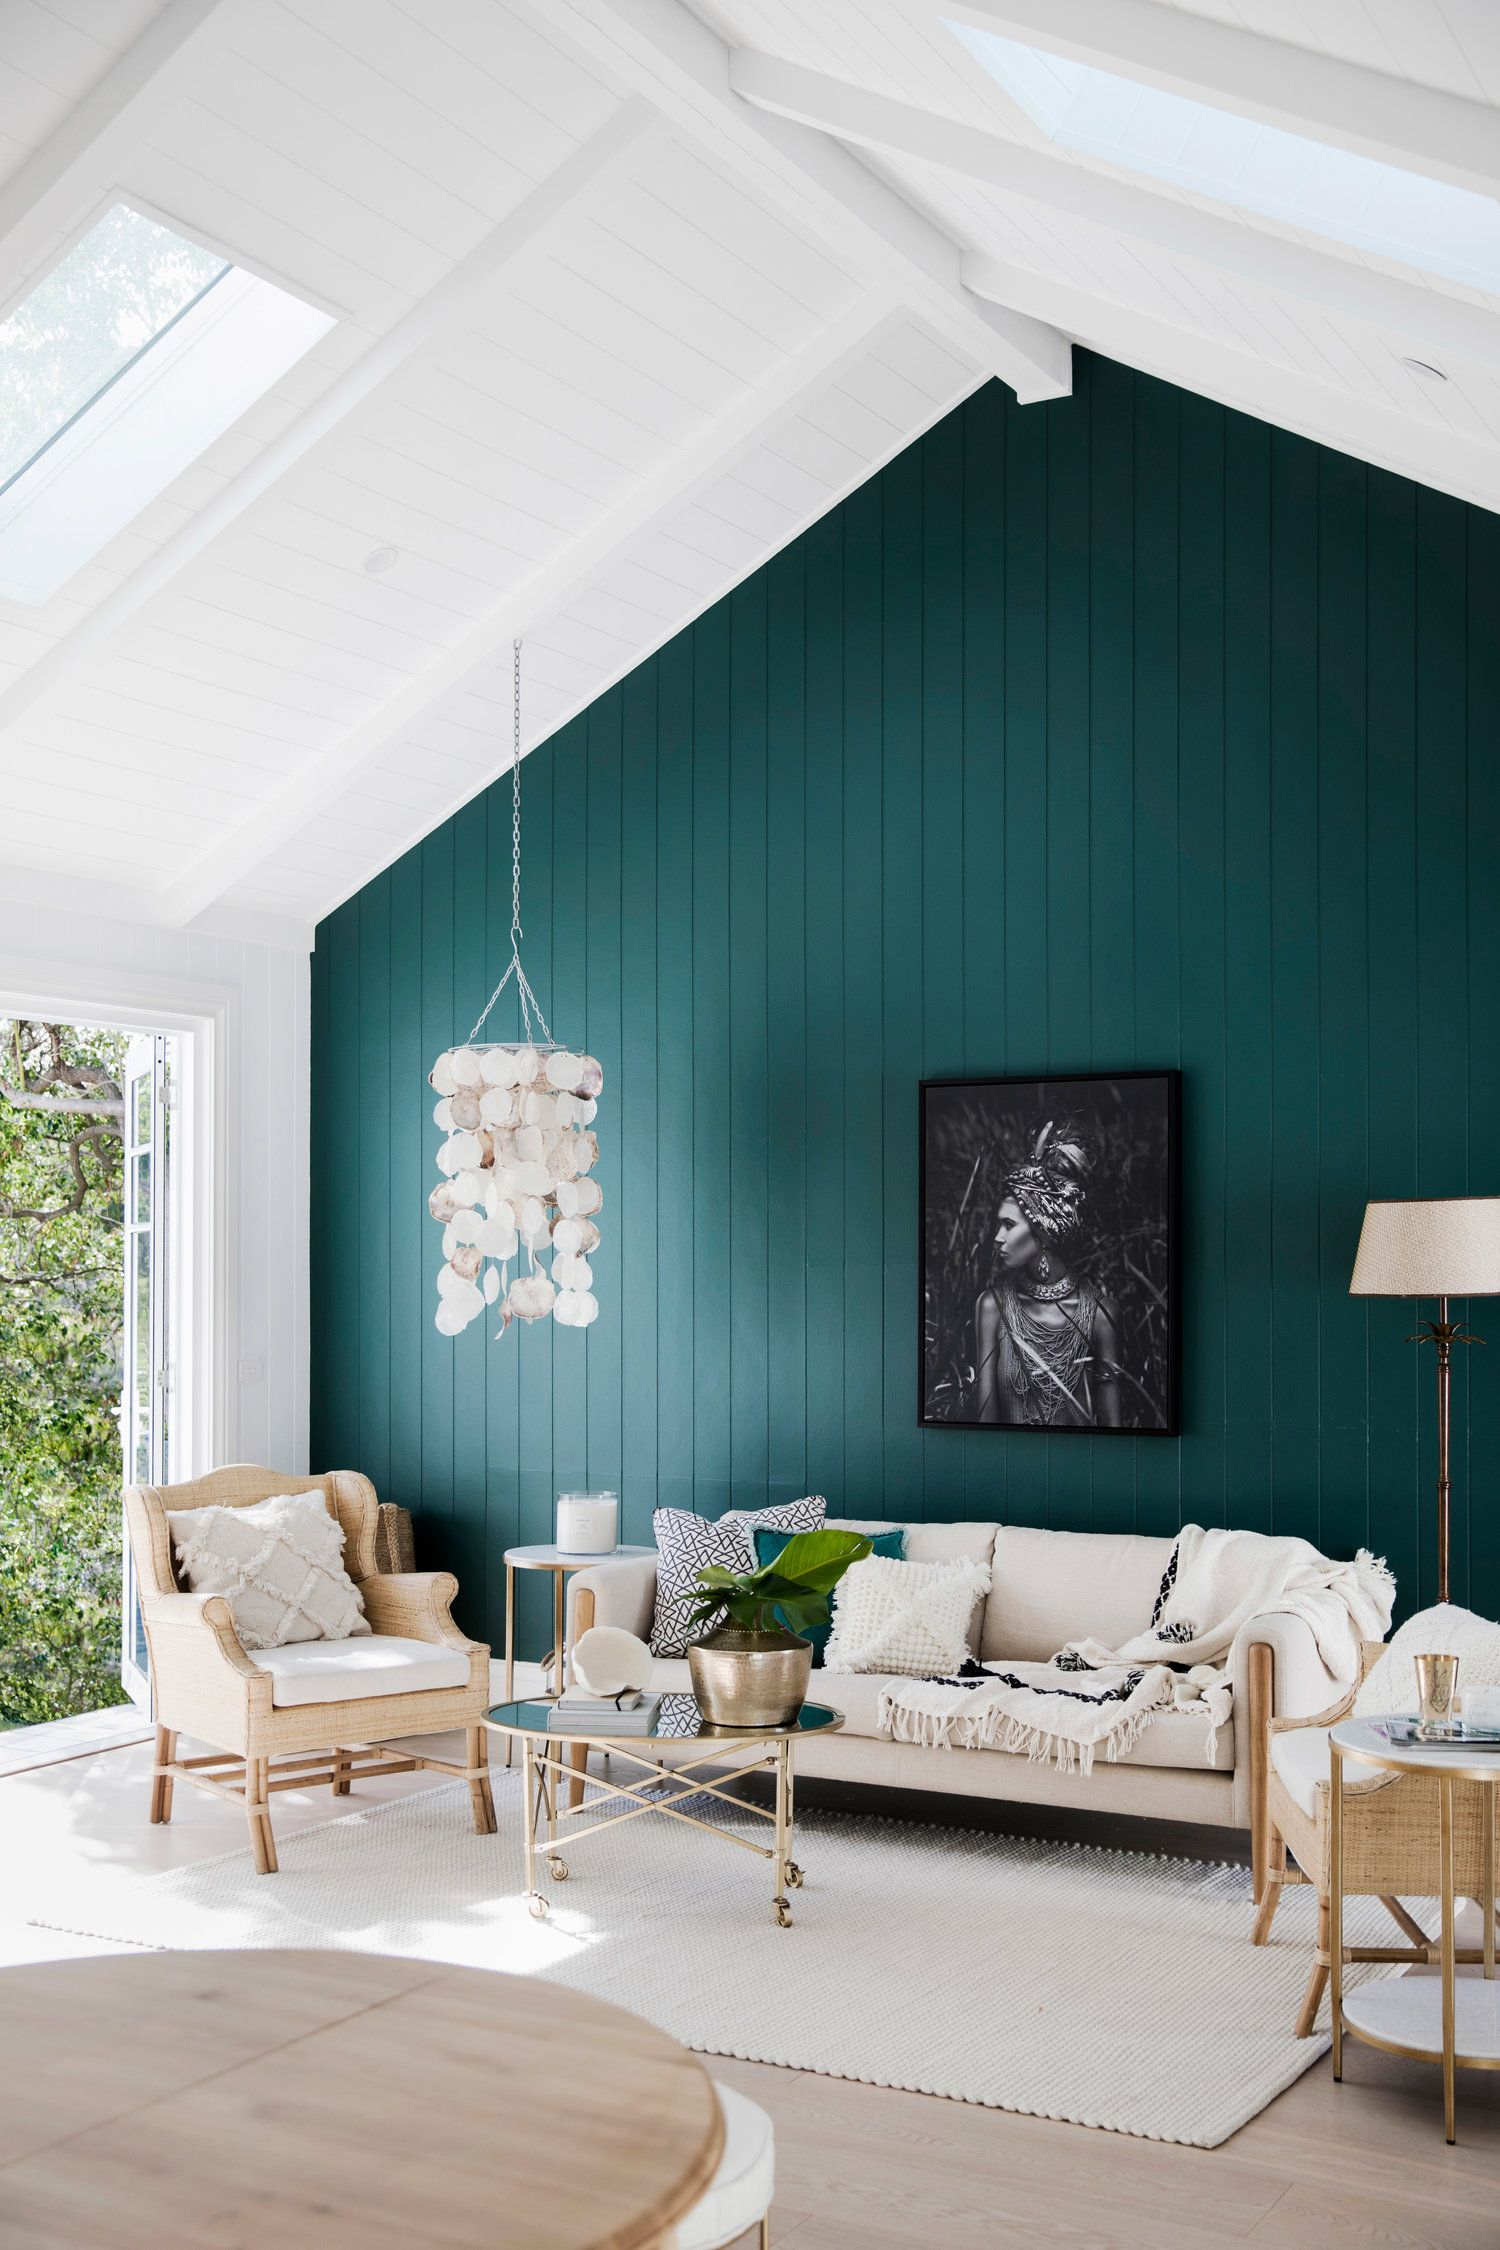 Raked Ceiling Green Accent Wall White And Natural Furnishings